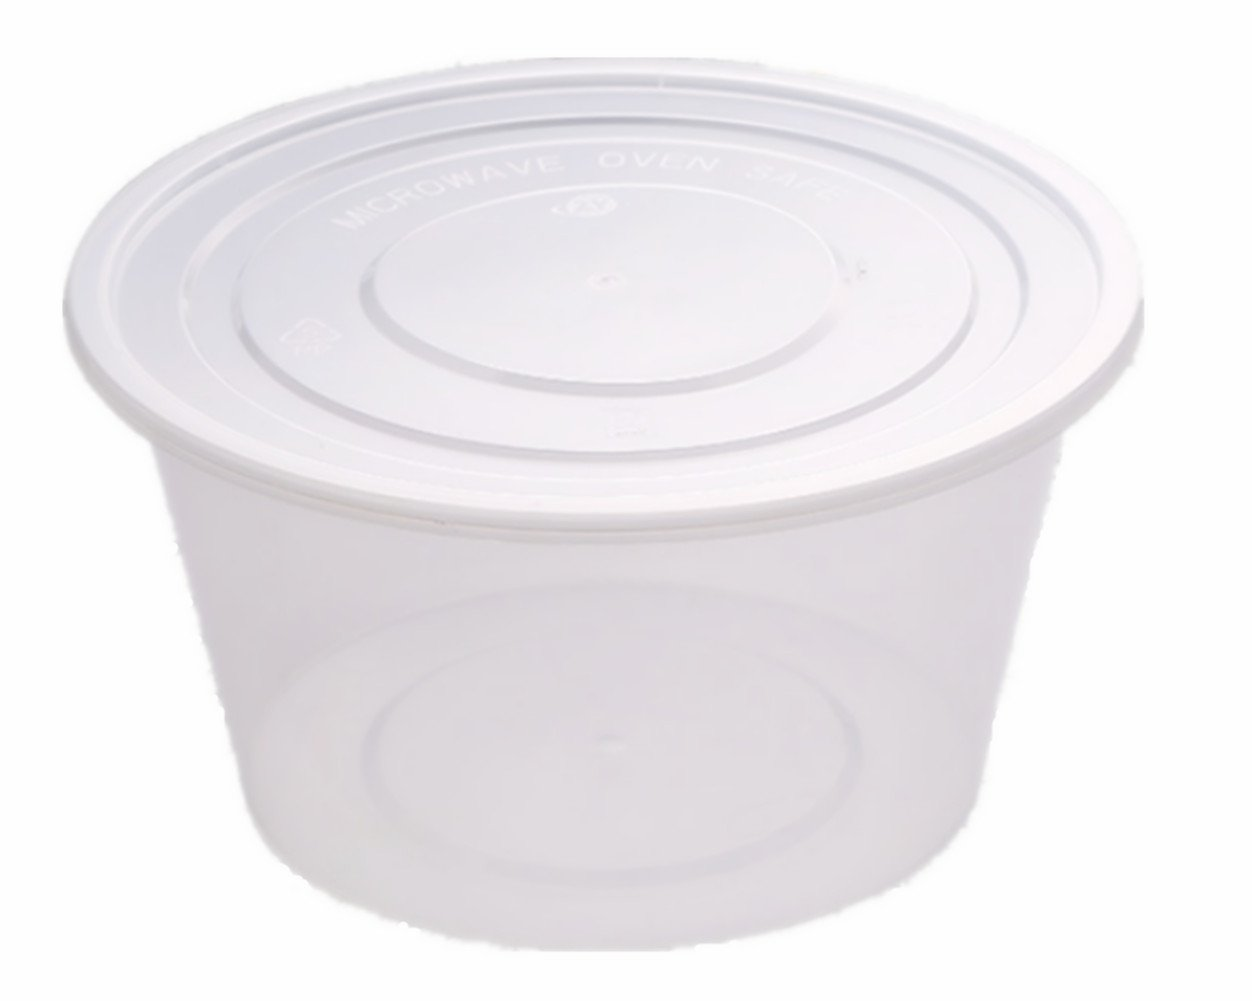 Emoyi Plastic Disposable Portion Cups Food Storage Container with Lids 16 Ounce Pack of 50 mk77